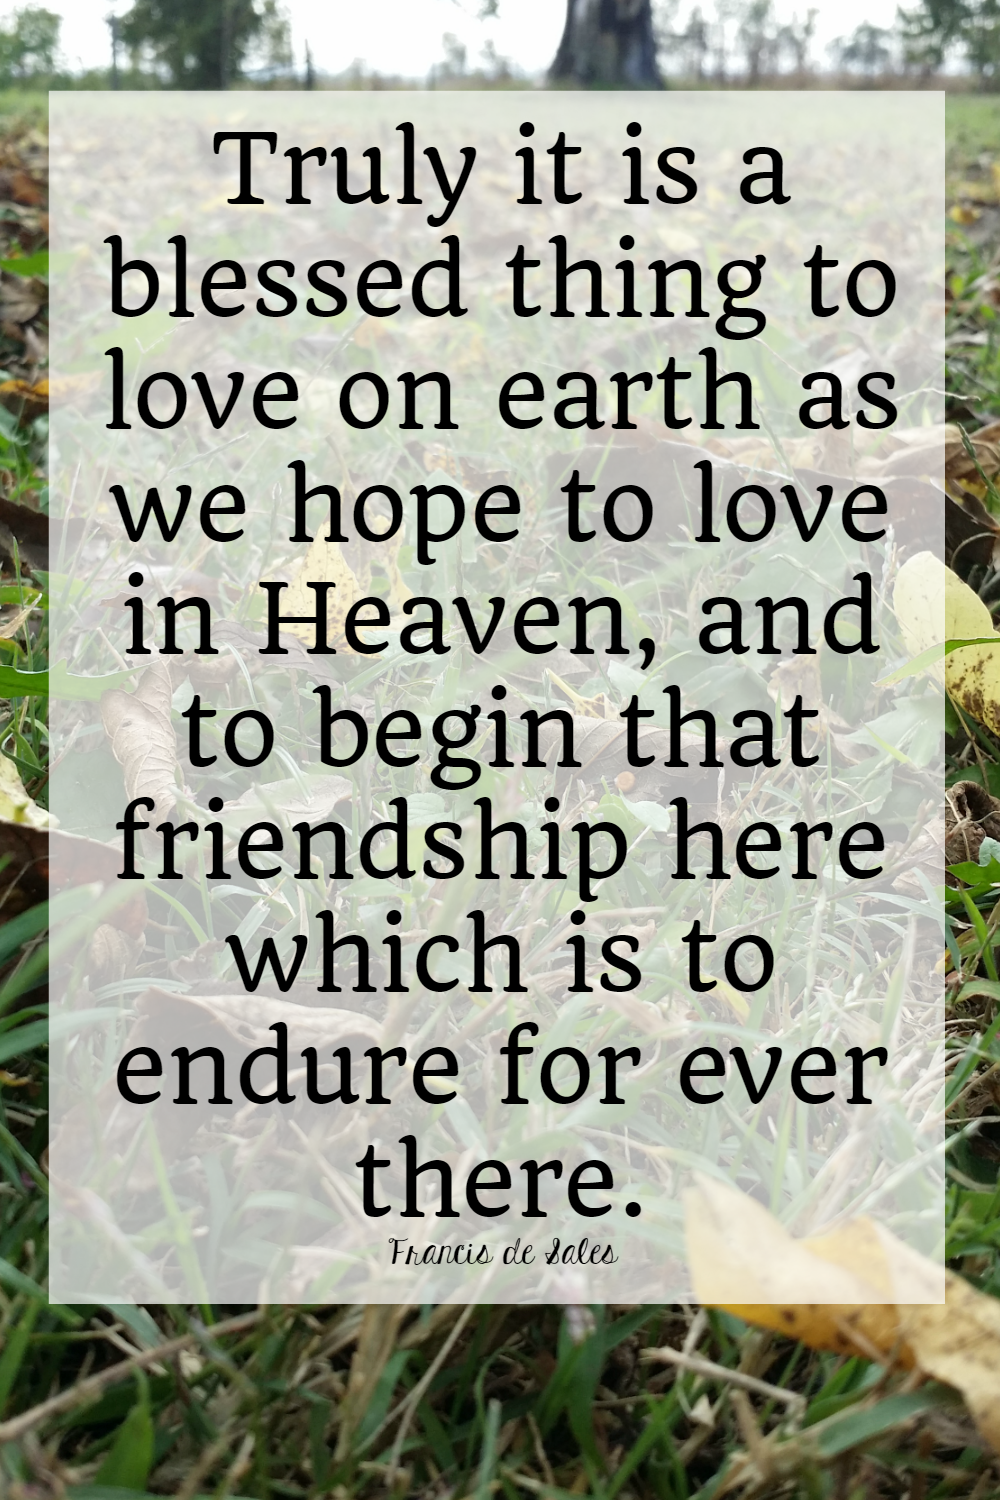 Saints Quotes Love On Earth The Littlest Way